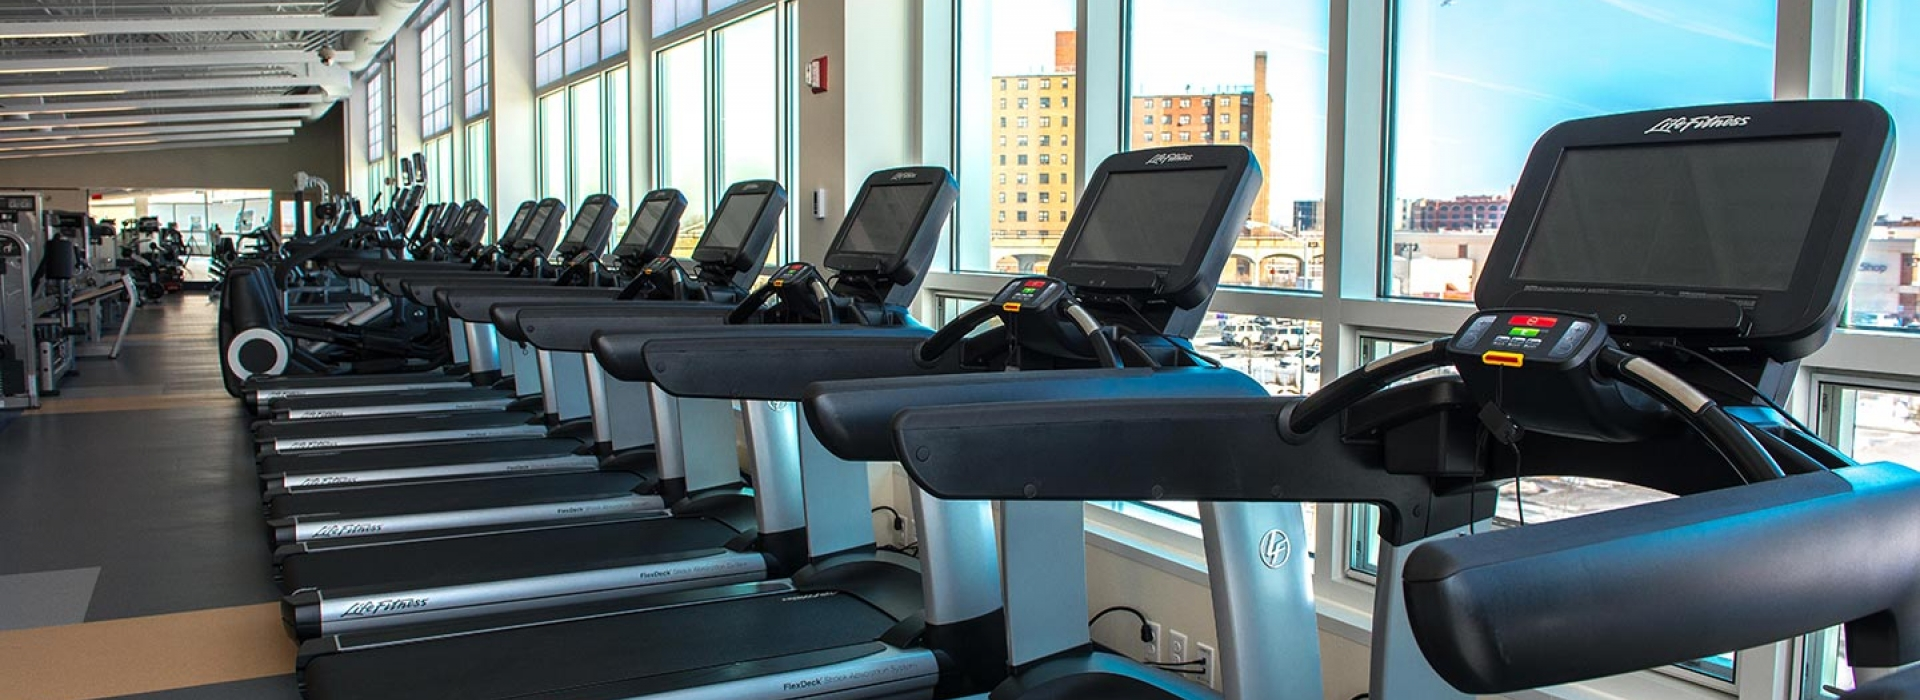 Rockaway YMCA, gym, pool, and much more in Queens | New York City's YMCA